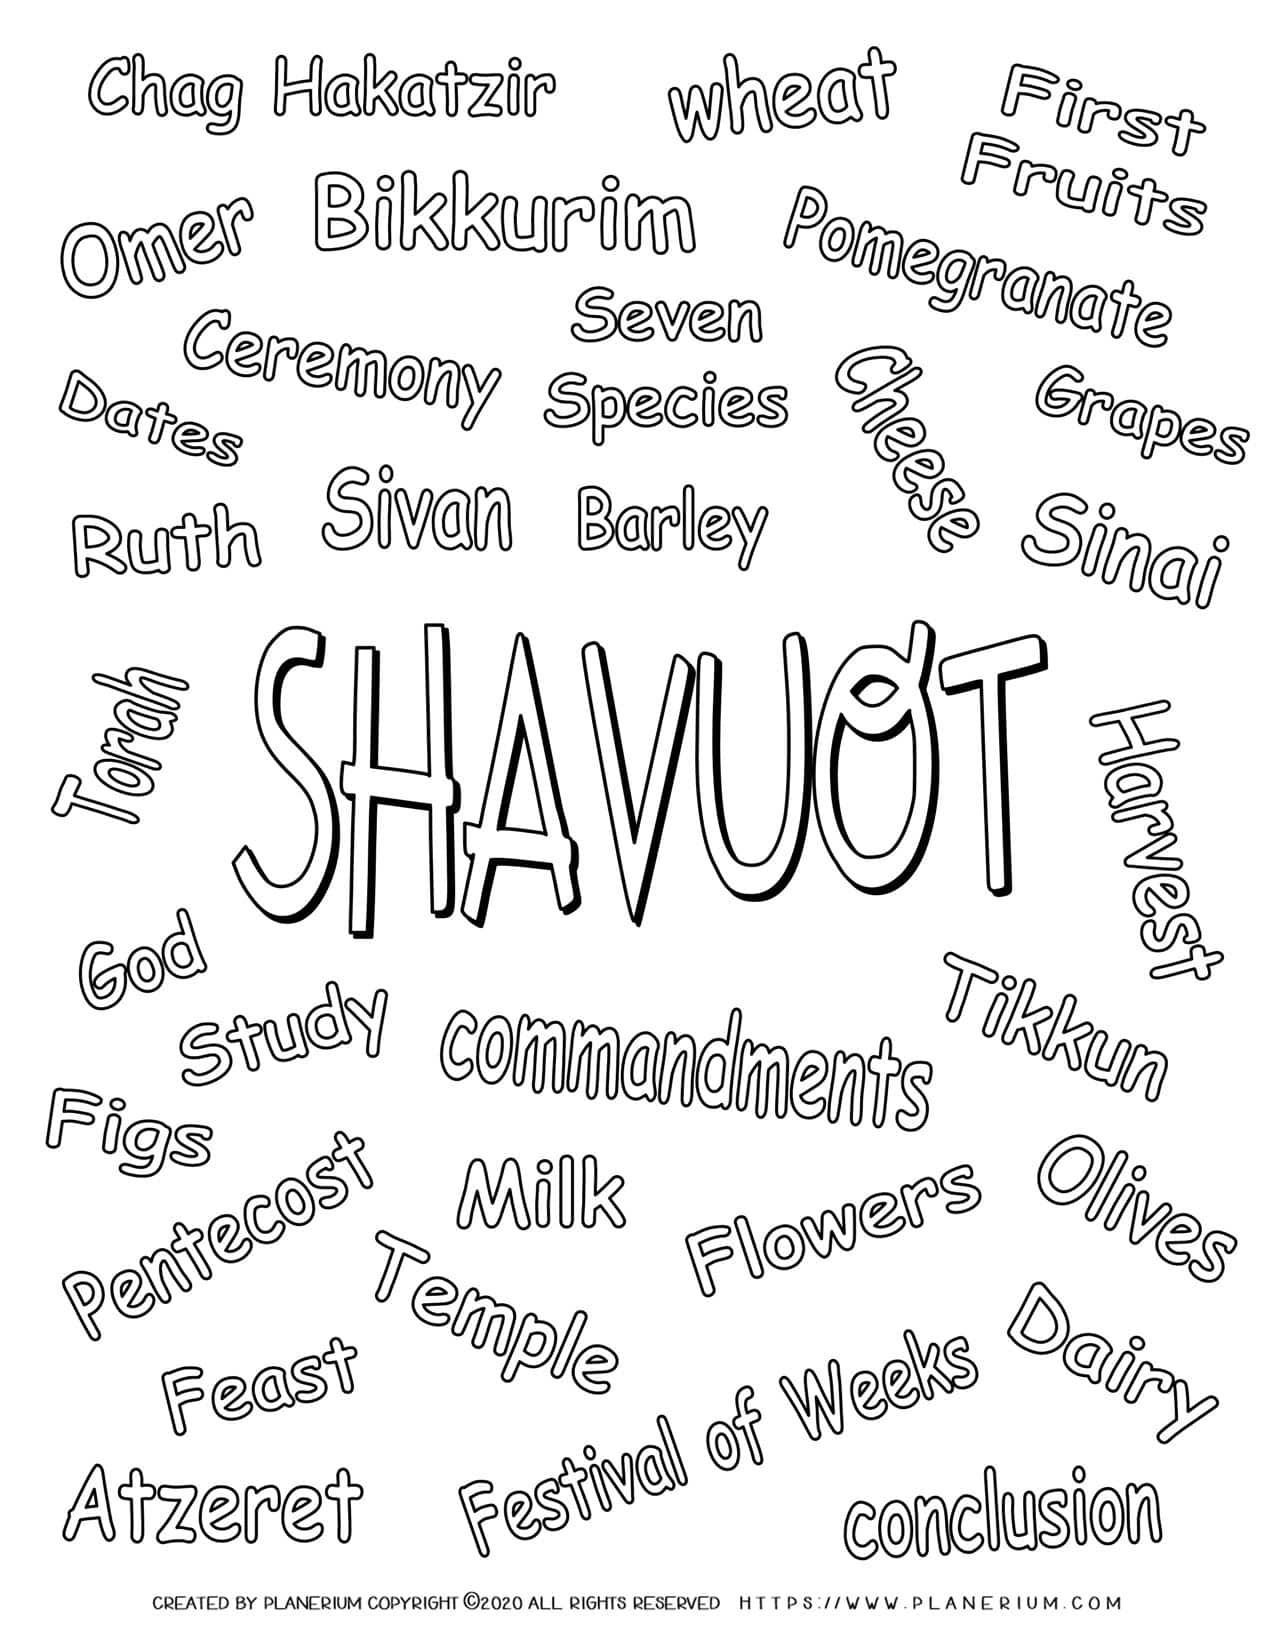 Shavuot Coloring Page - Related Words in English | Planerium